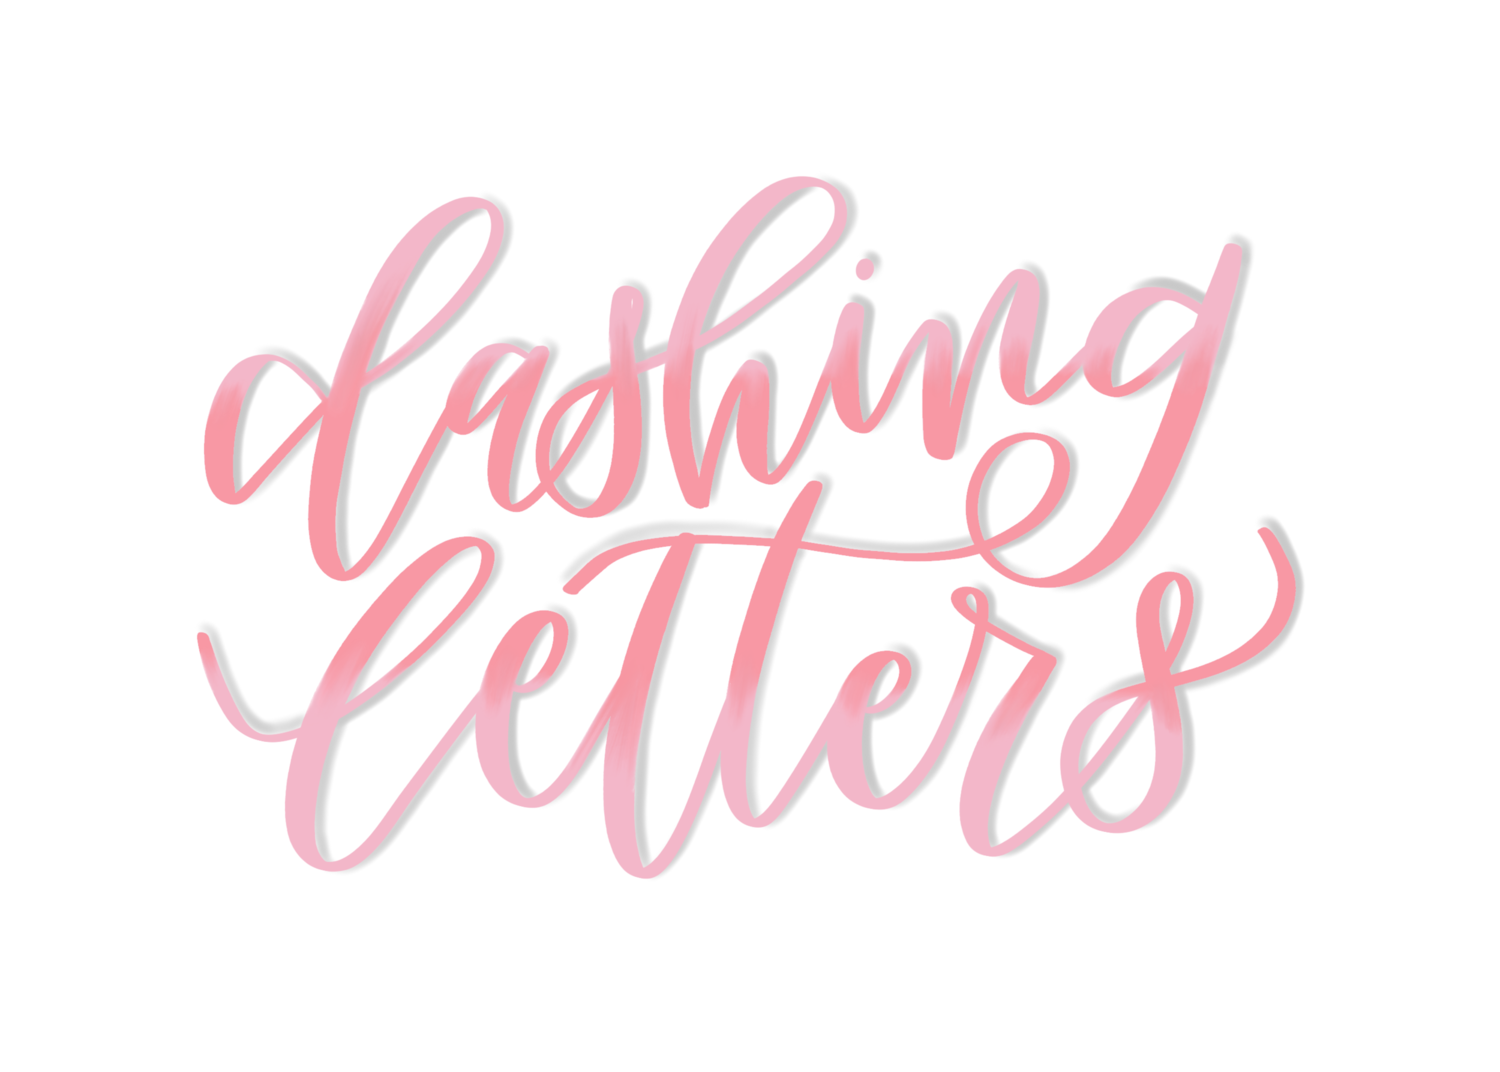 Dashing letters